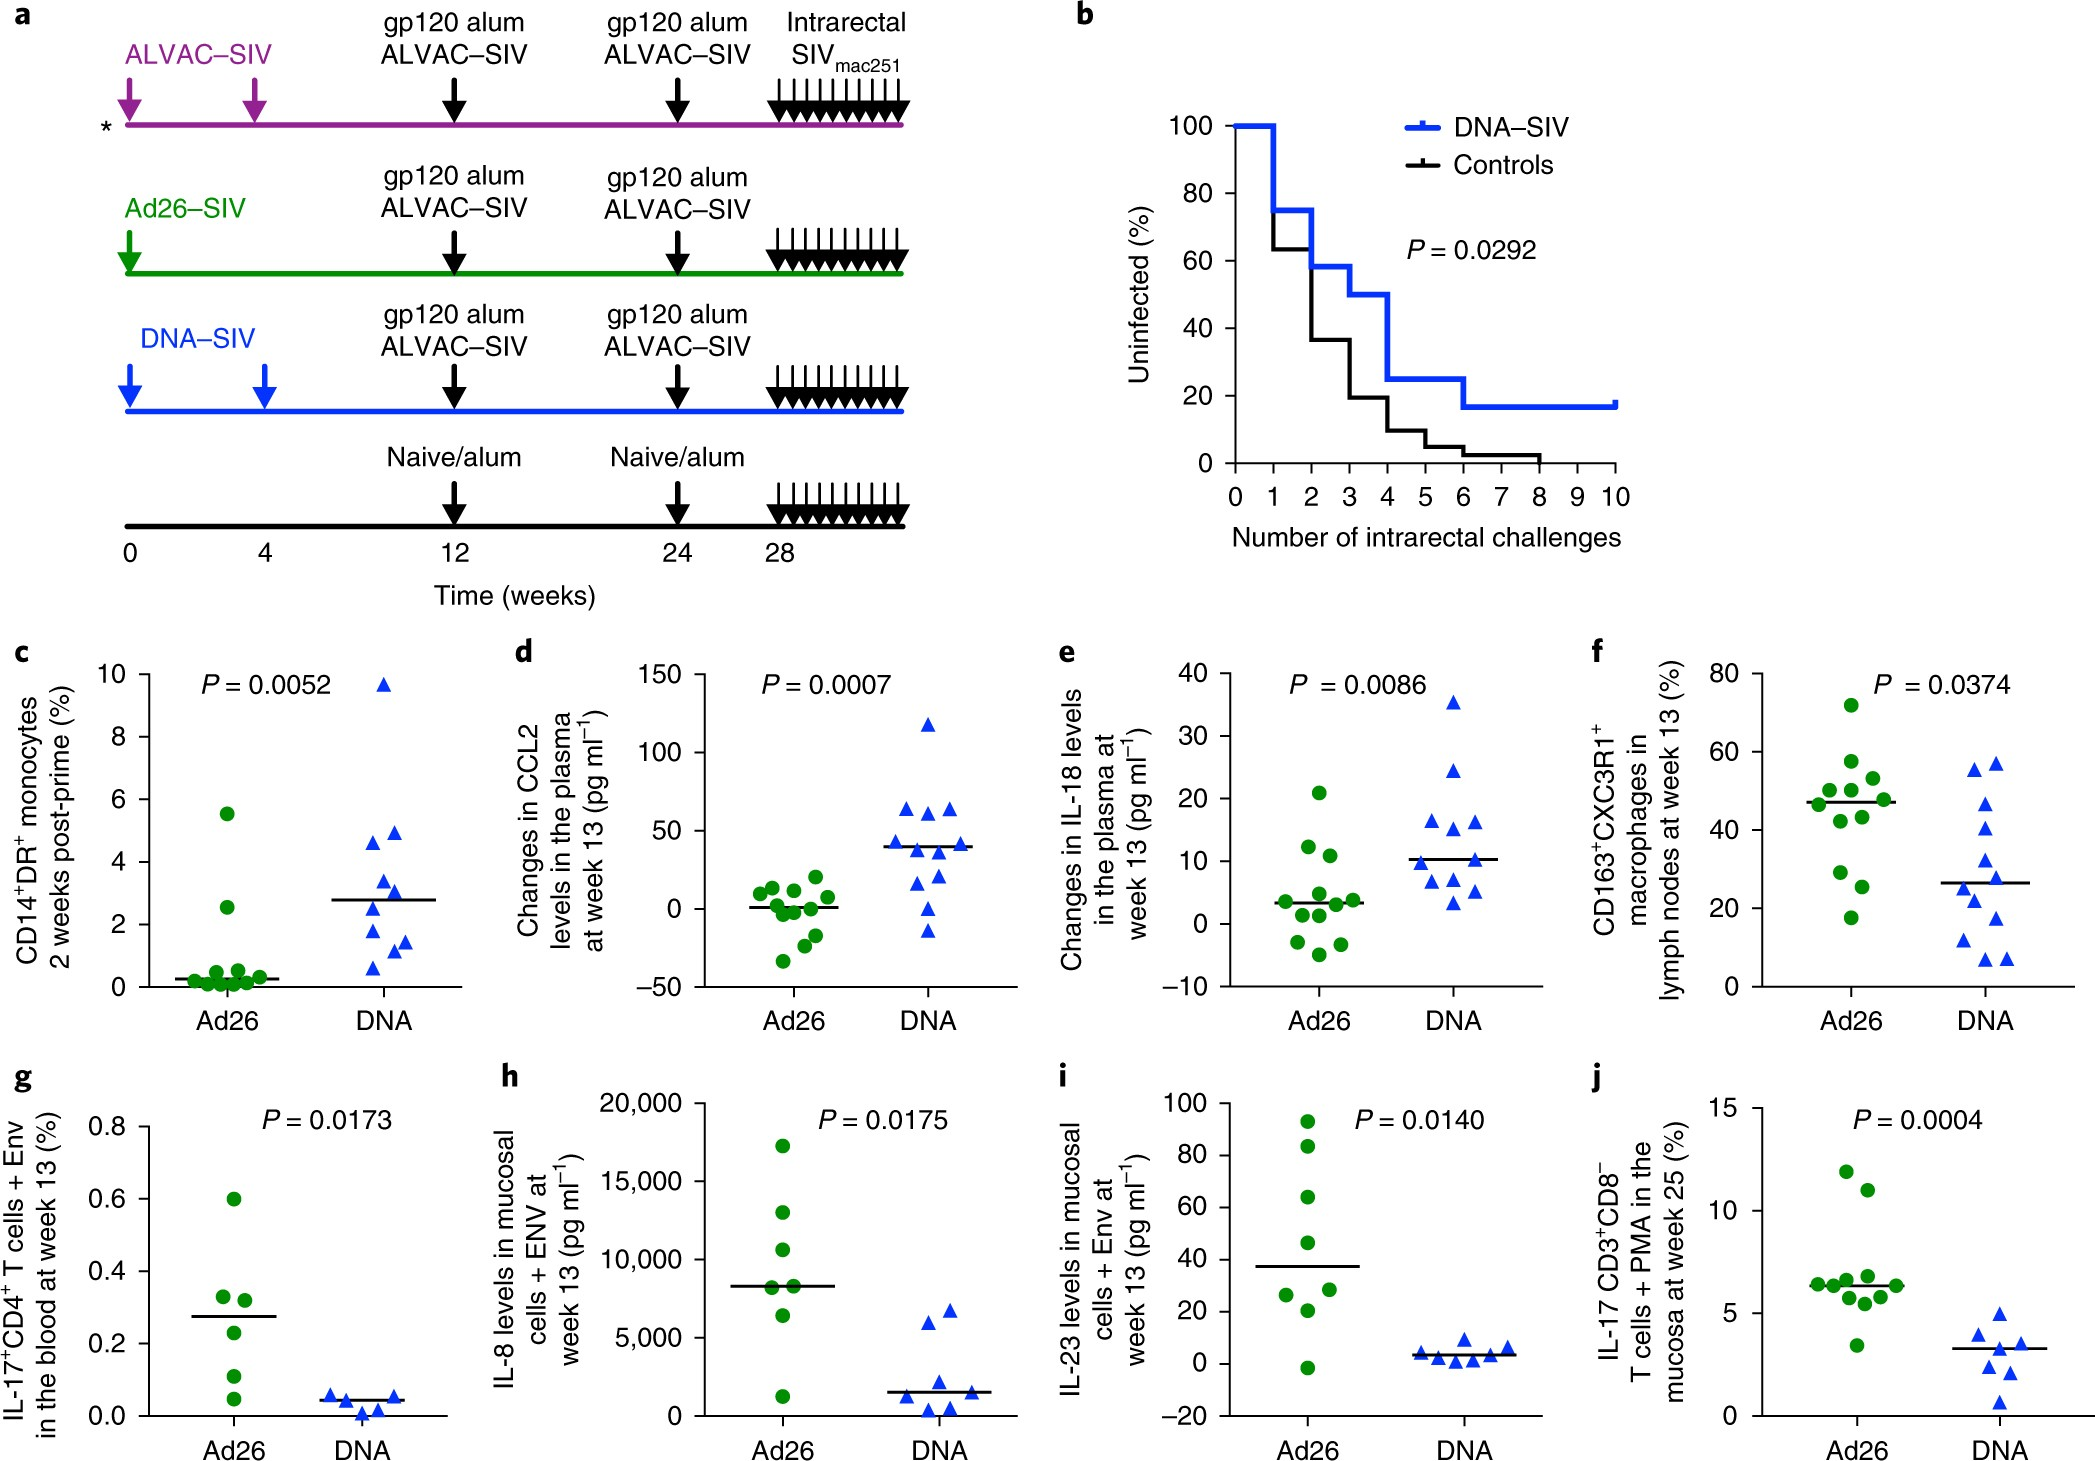 Hiv Vaccine Candidate Activation Of Hypoxia And The Inflammasome In Variable Voltage Regulator Circuit With L200 Cd14 Monocytes Is Associated A Decreased Risk Siv Mac251 Acquisition Nature